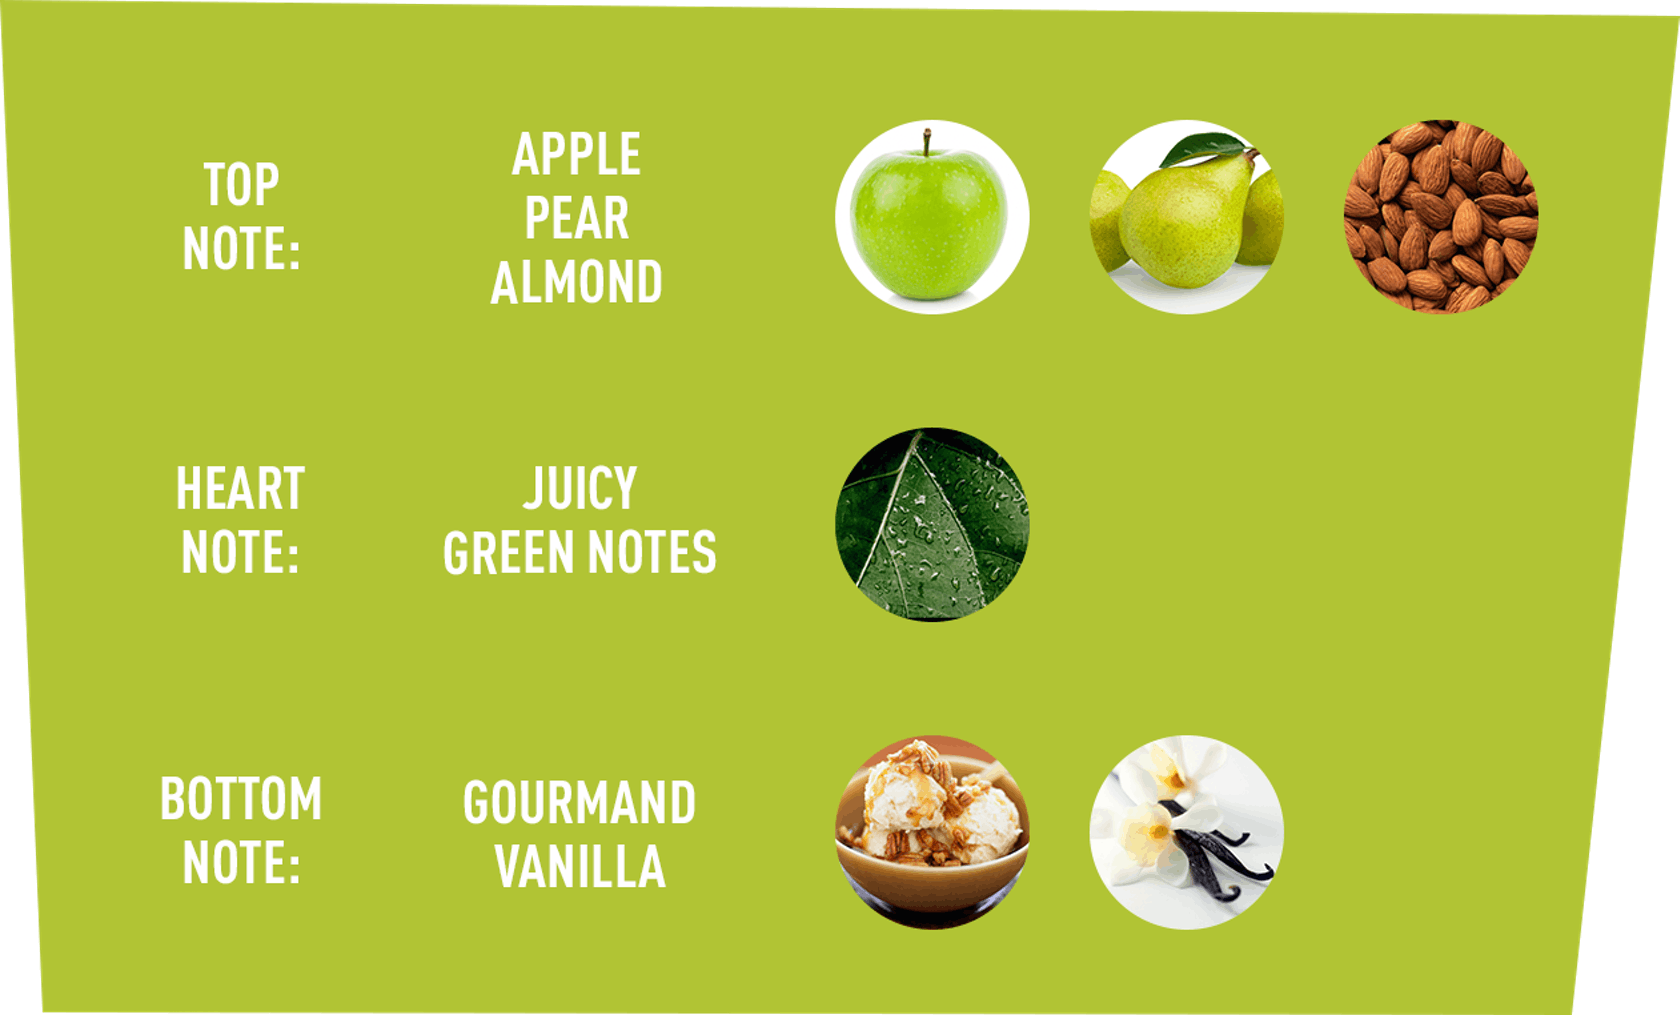 Top Note: Apple, Pear, Almond | Heart Note: Juicy, Green Notes | Bottom Note: Gourmand, Vanilla